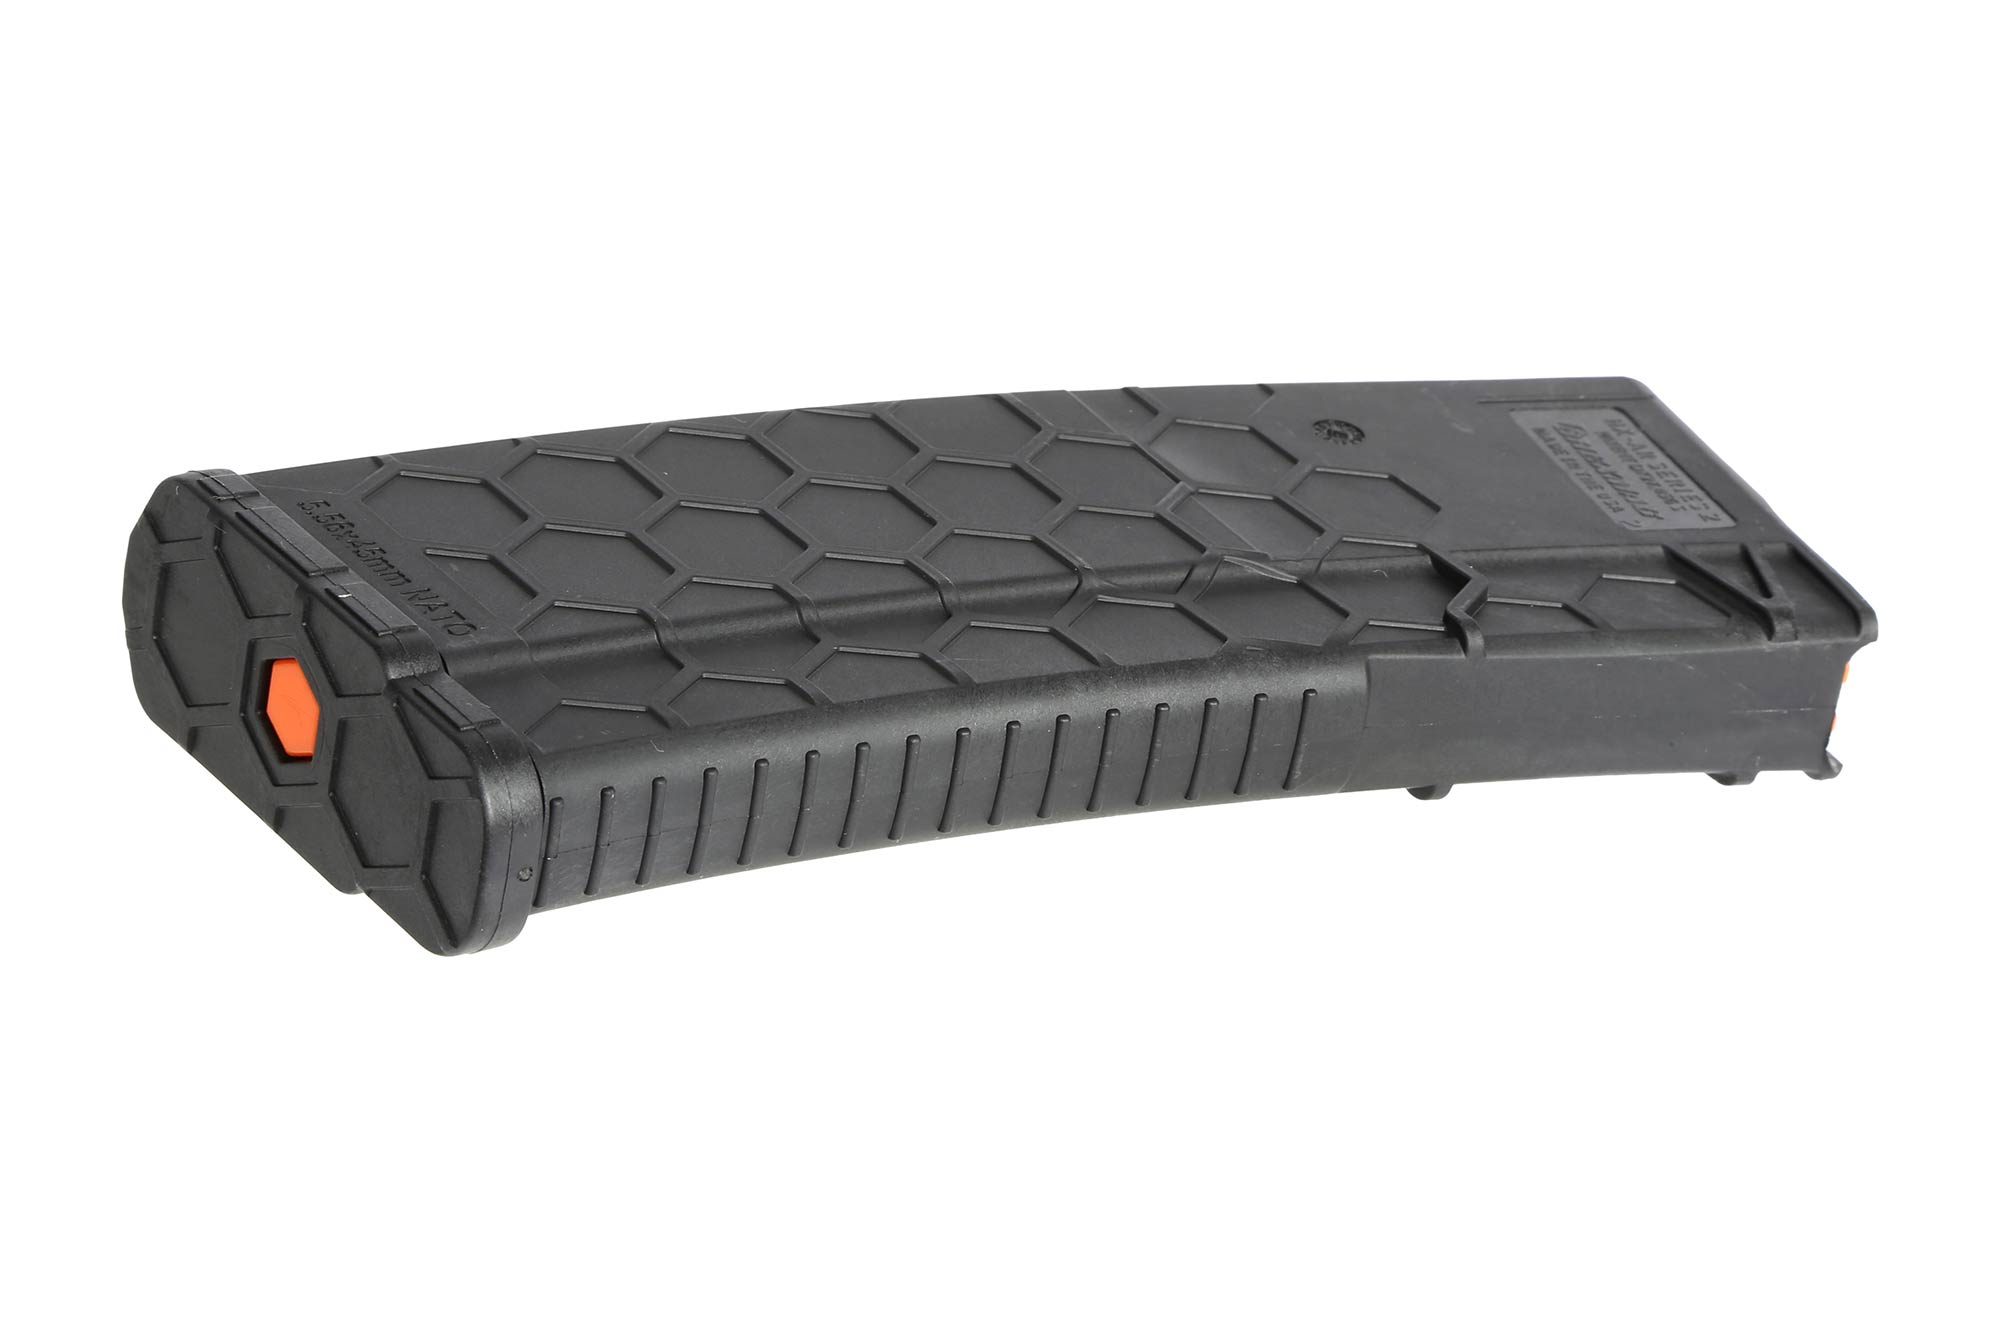 The Hexmag AR 15 magazine has a removable baseplate for cleaning and maintenance